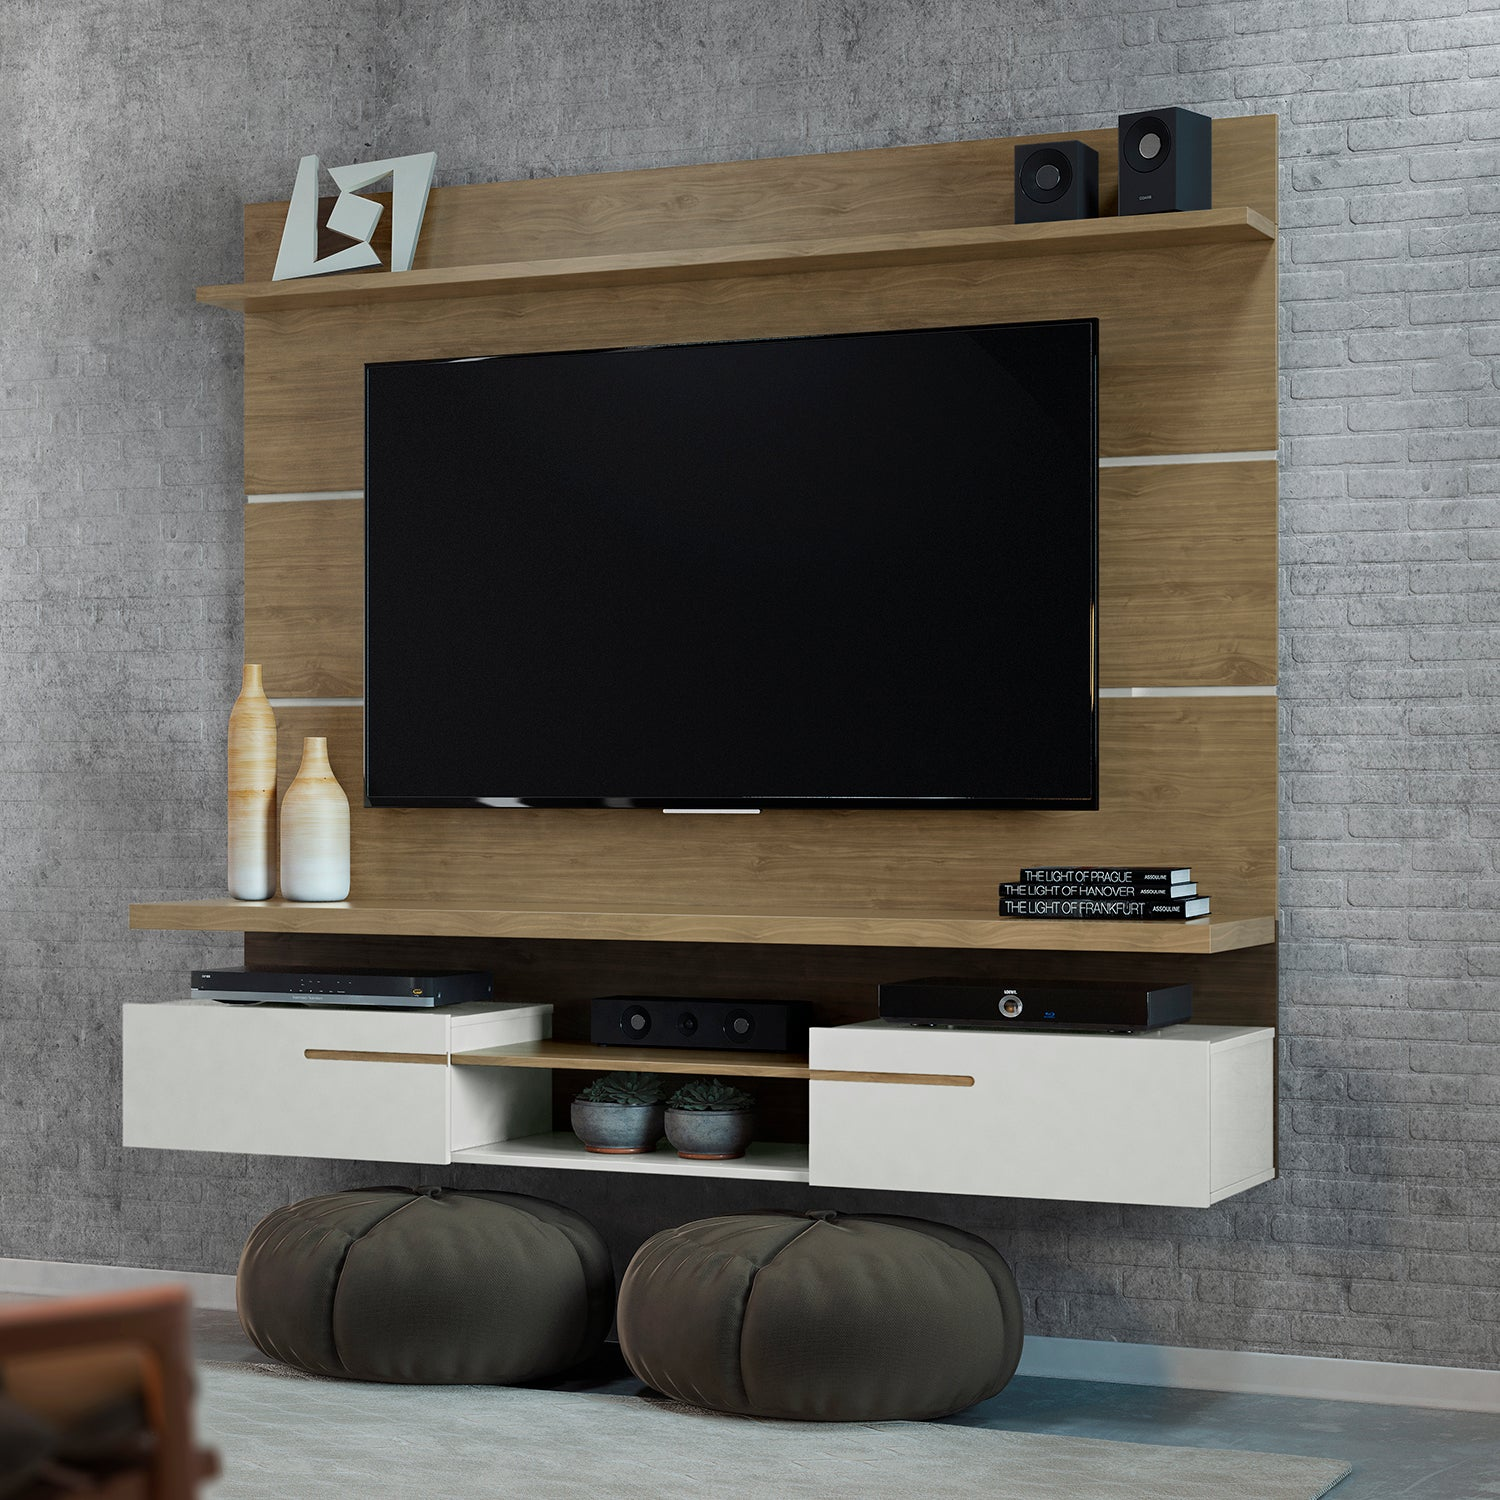 Panel de TV Emporium Natural, Beige 181X157X38